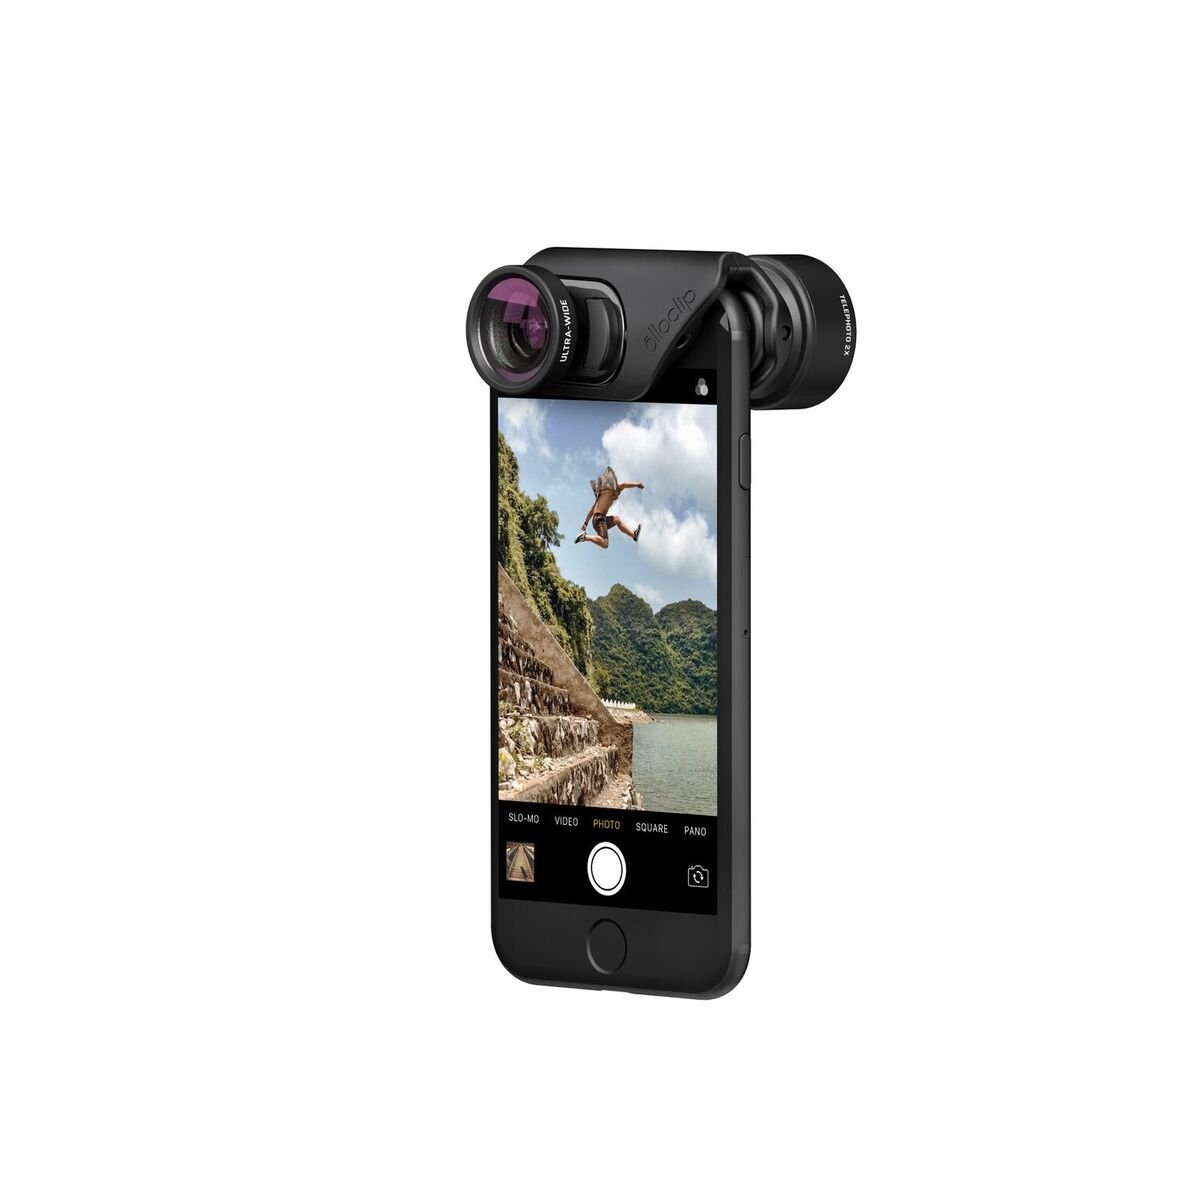 olloclip — ACTIVE LENS SET + OLLO CASE Combo for iPhone 8/8 Plus and iPhone 7/7 Plus — Includes 1 iPhone case for the iPhone 7 & 8 + MACRO Premium Glass Lens — Lens: Black, Case: Clear by olloclip